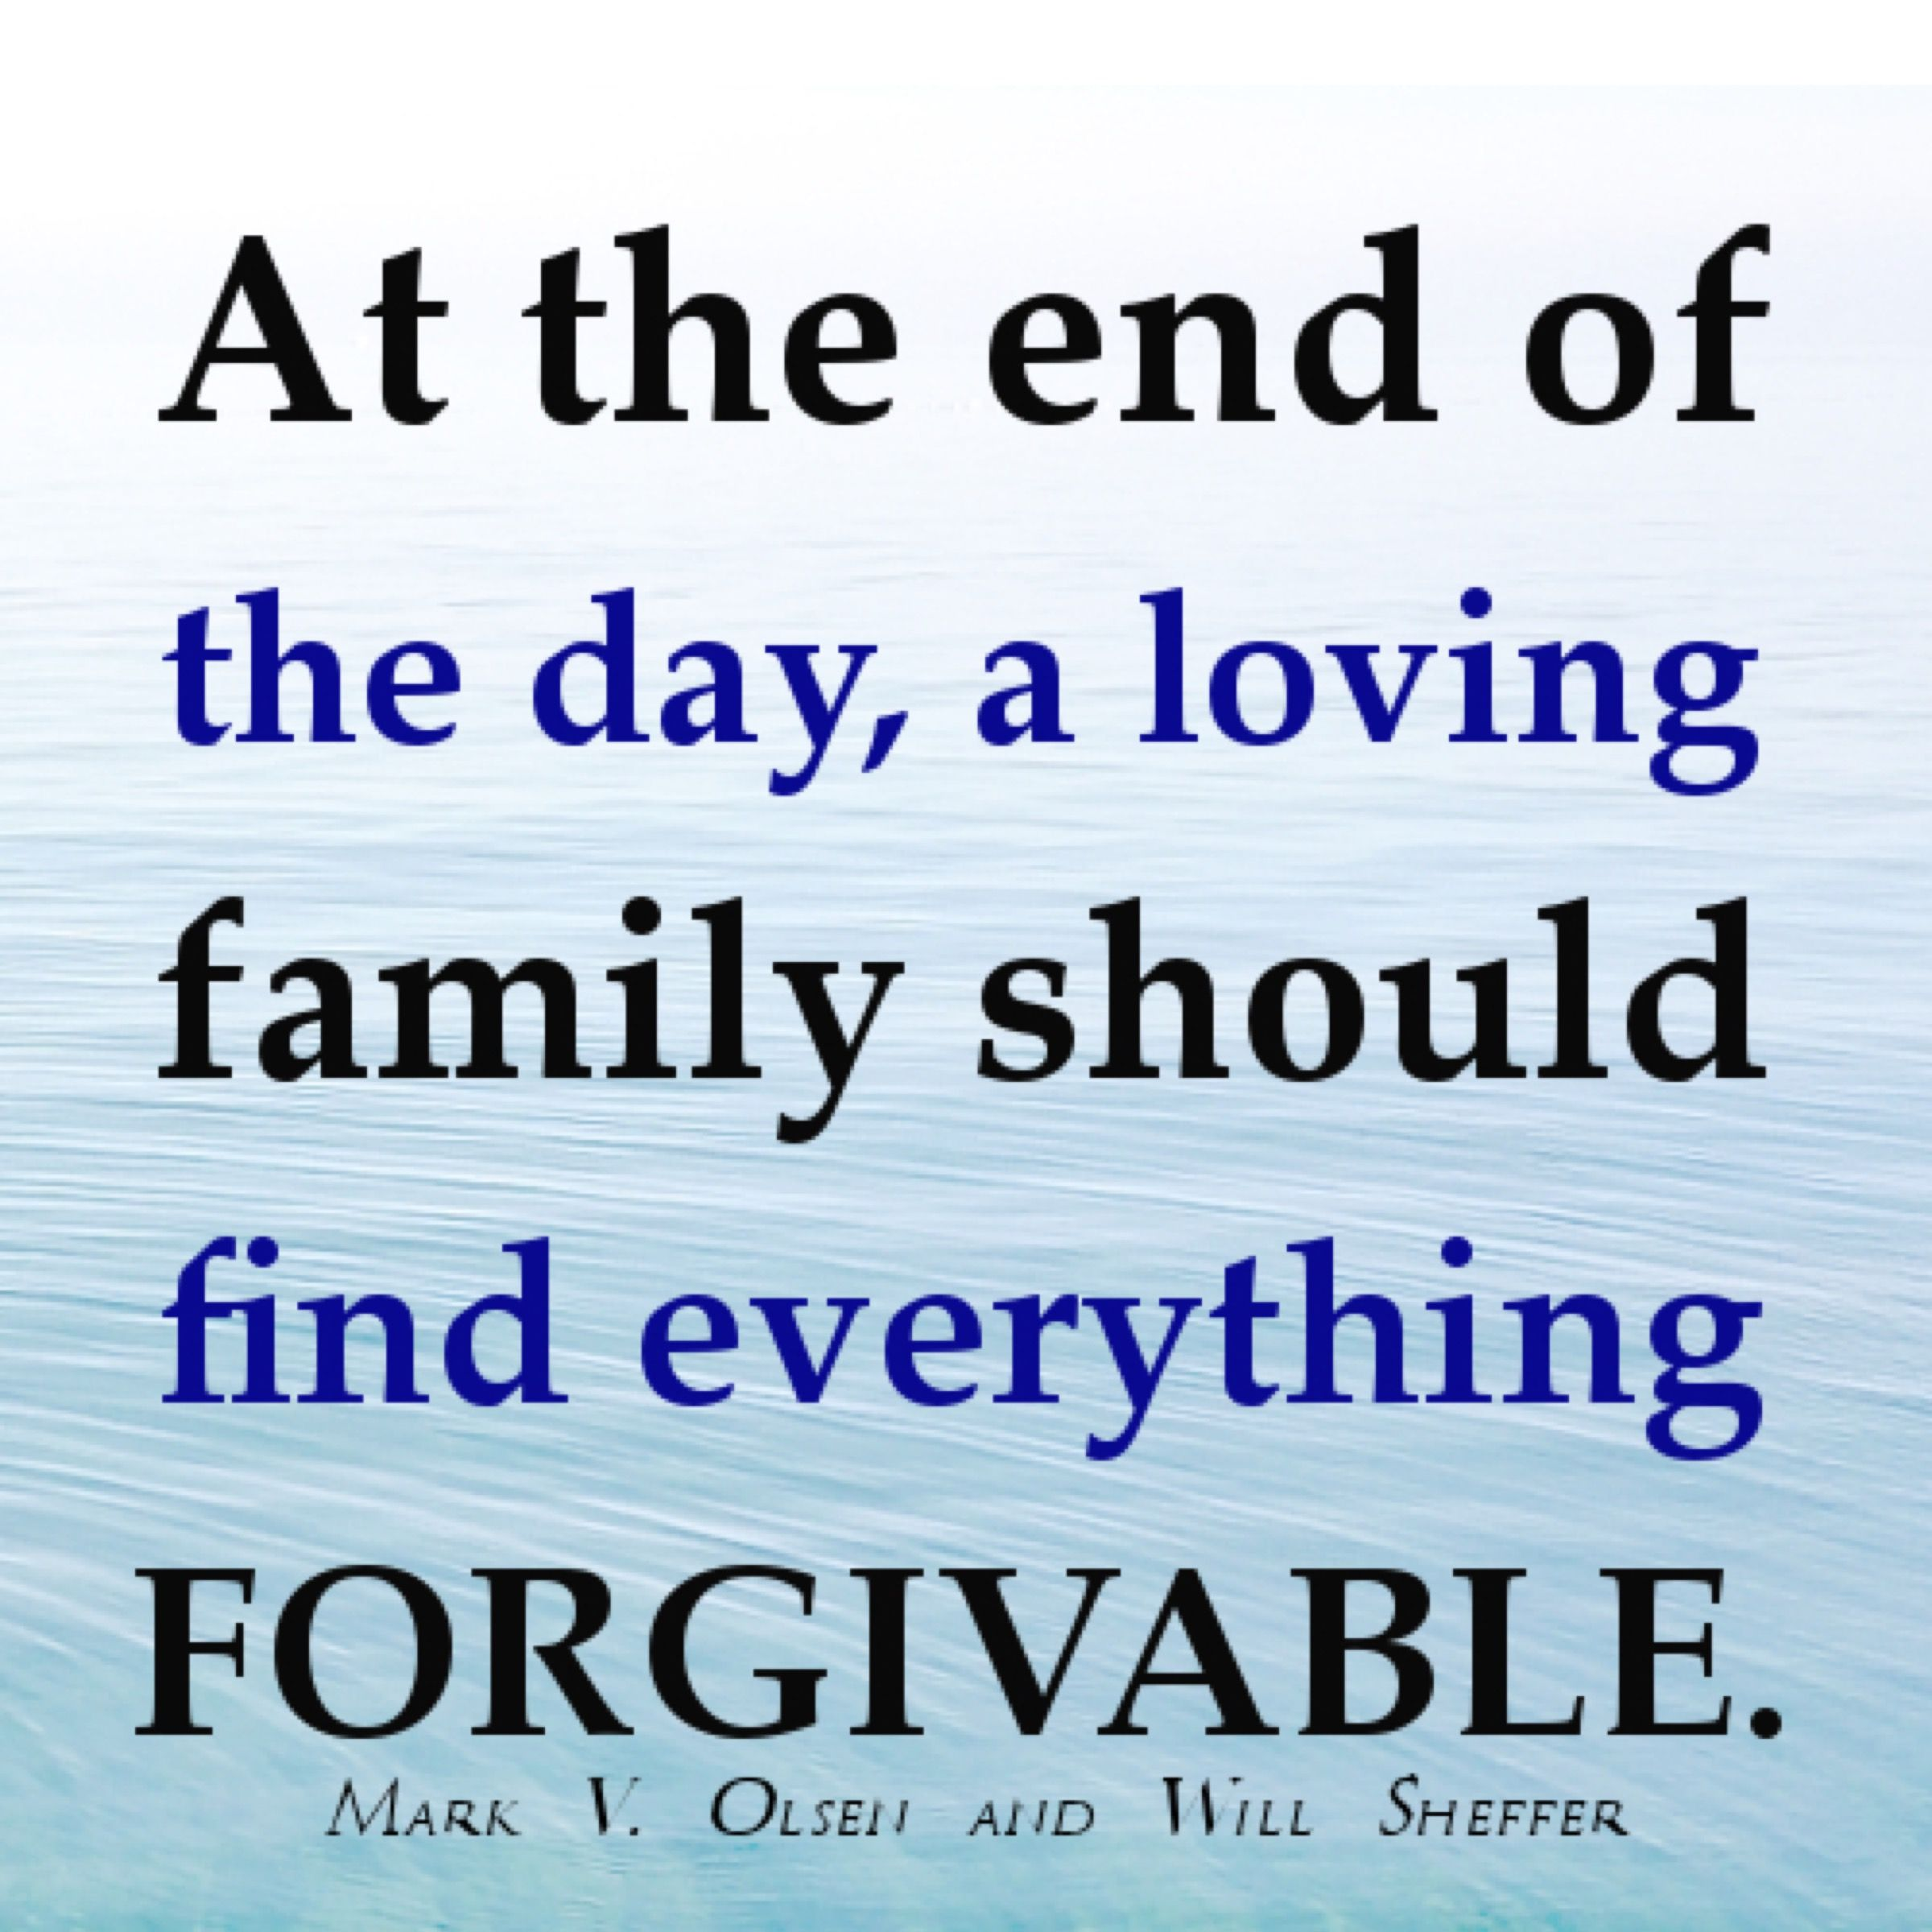 At the end of the day, a loving family should find everything forgivable. —Mark V. Olsen.   #Loving #Latham #Family #Reunion #FamilyReunion #LathamFamily #LathamReunion #LathamFamilyReunion